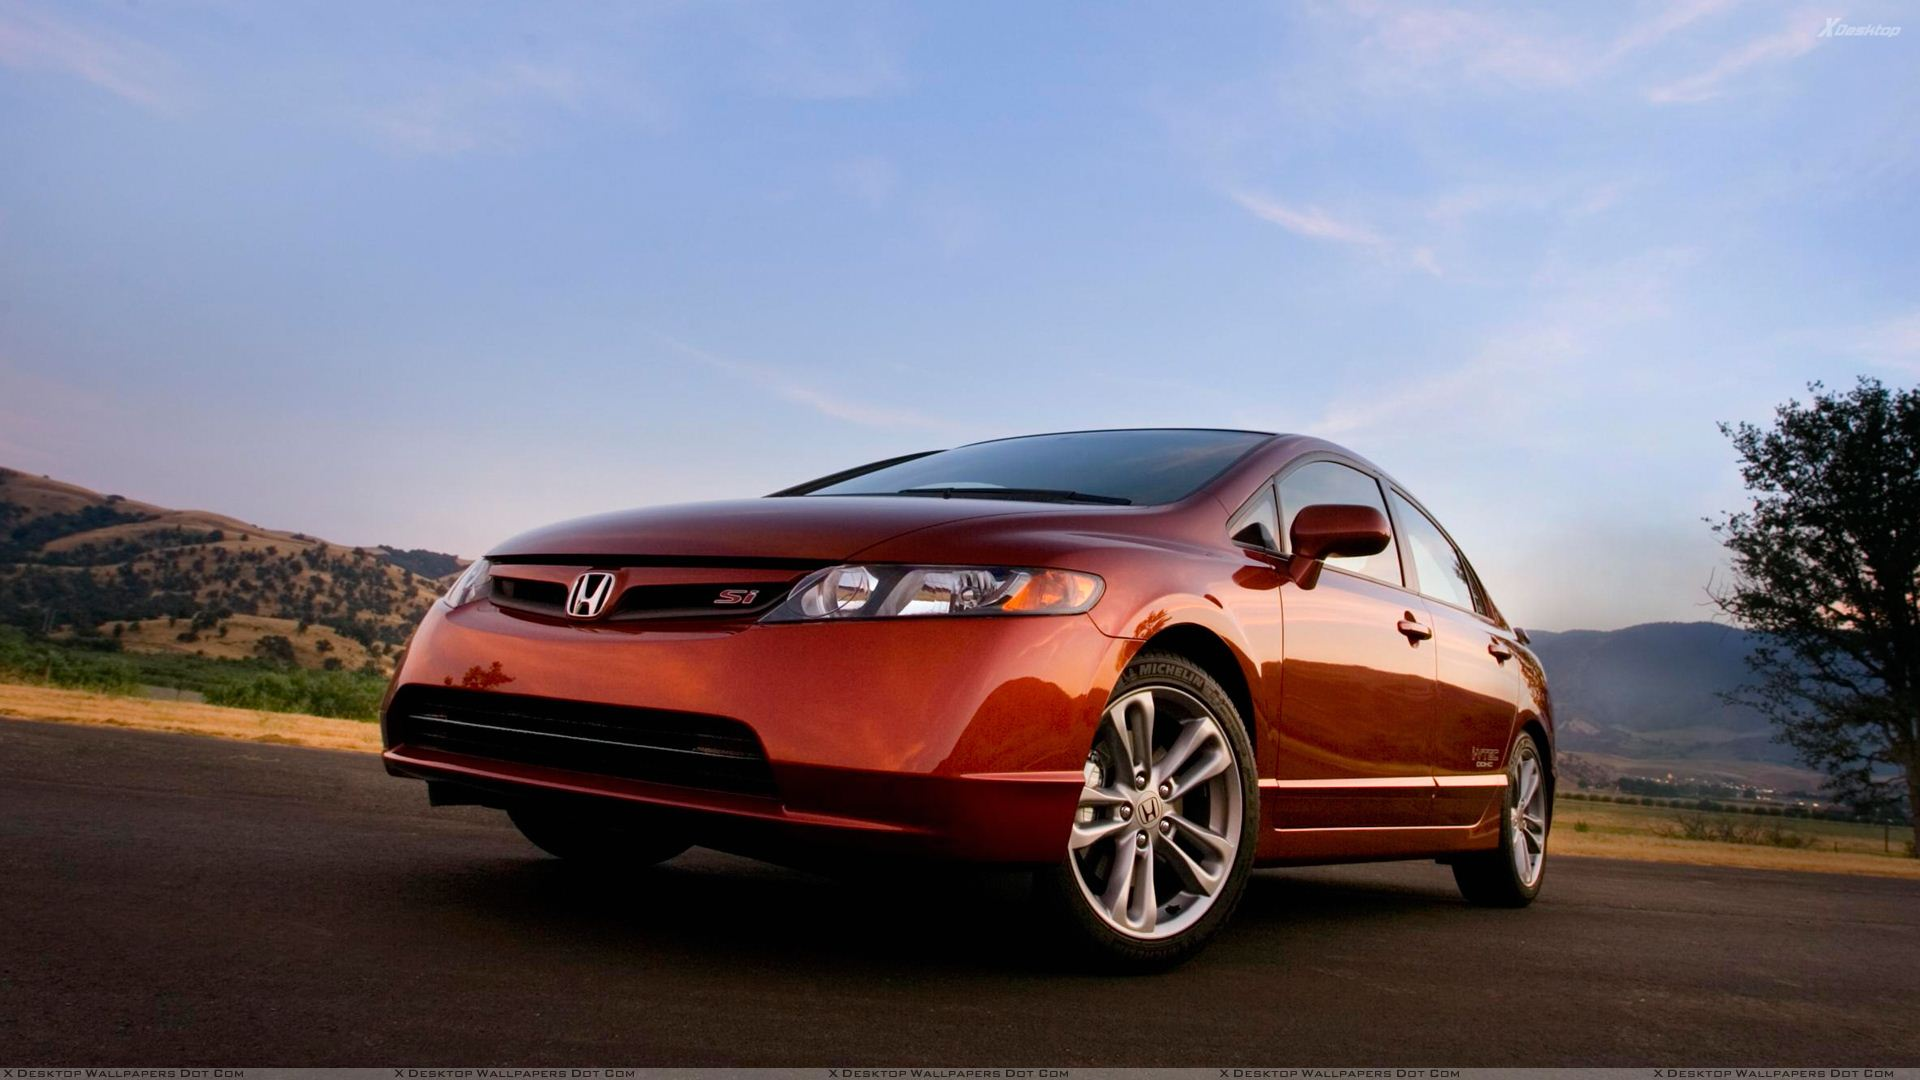 Honda Civic Wallpapers Photos Images In HD